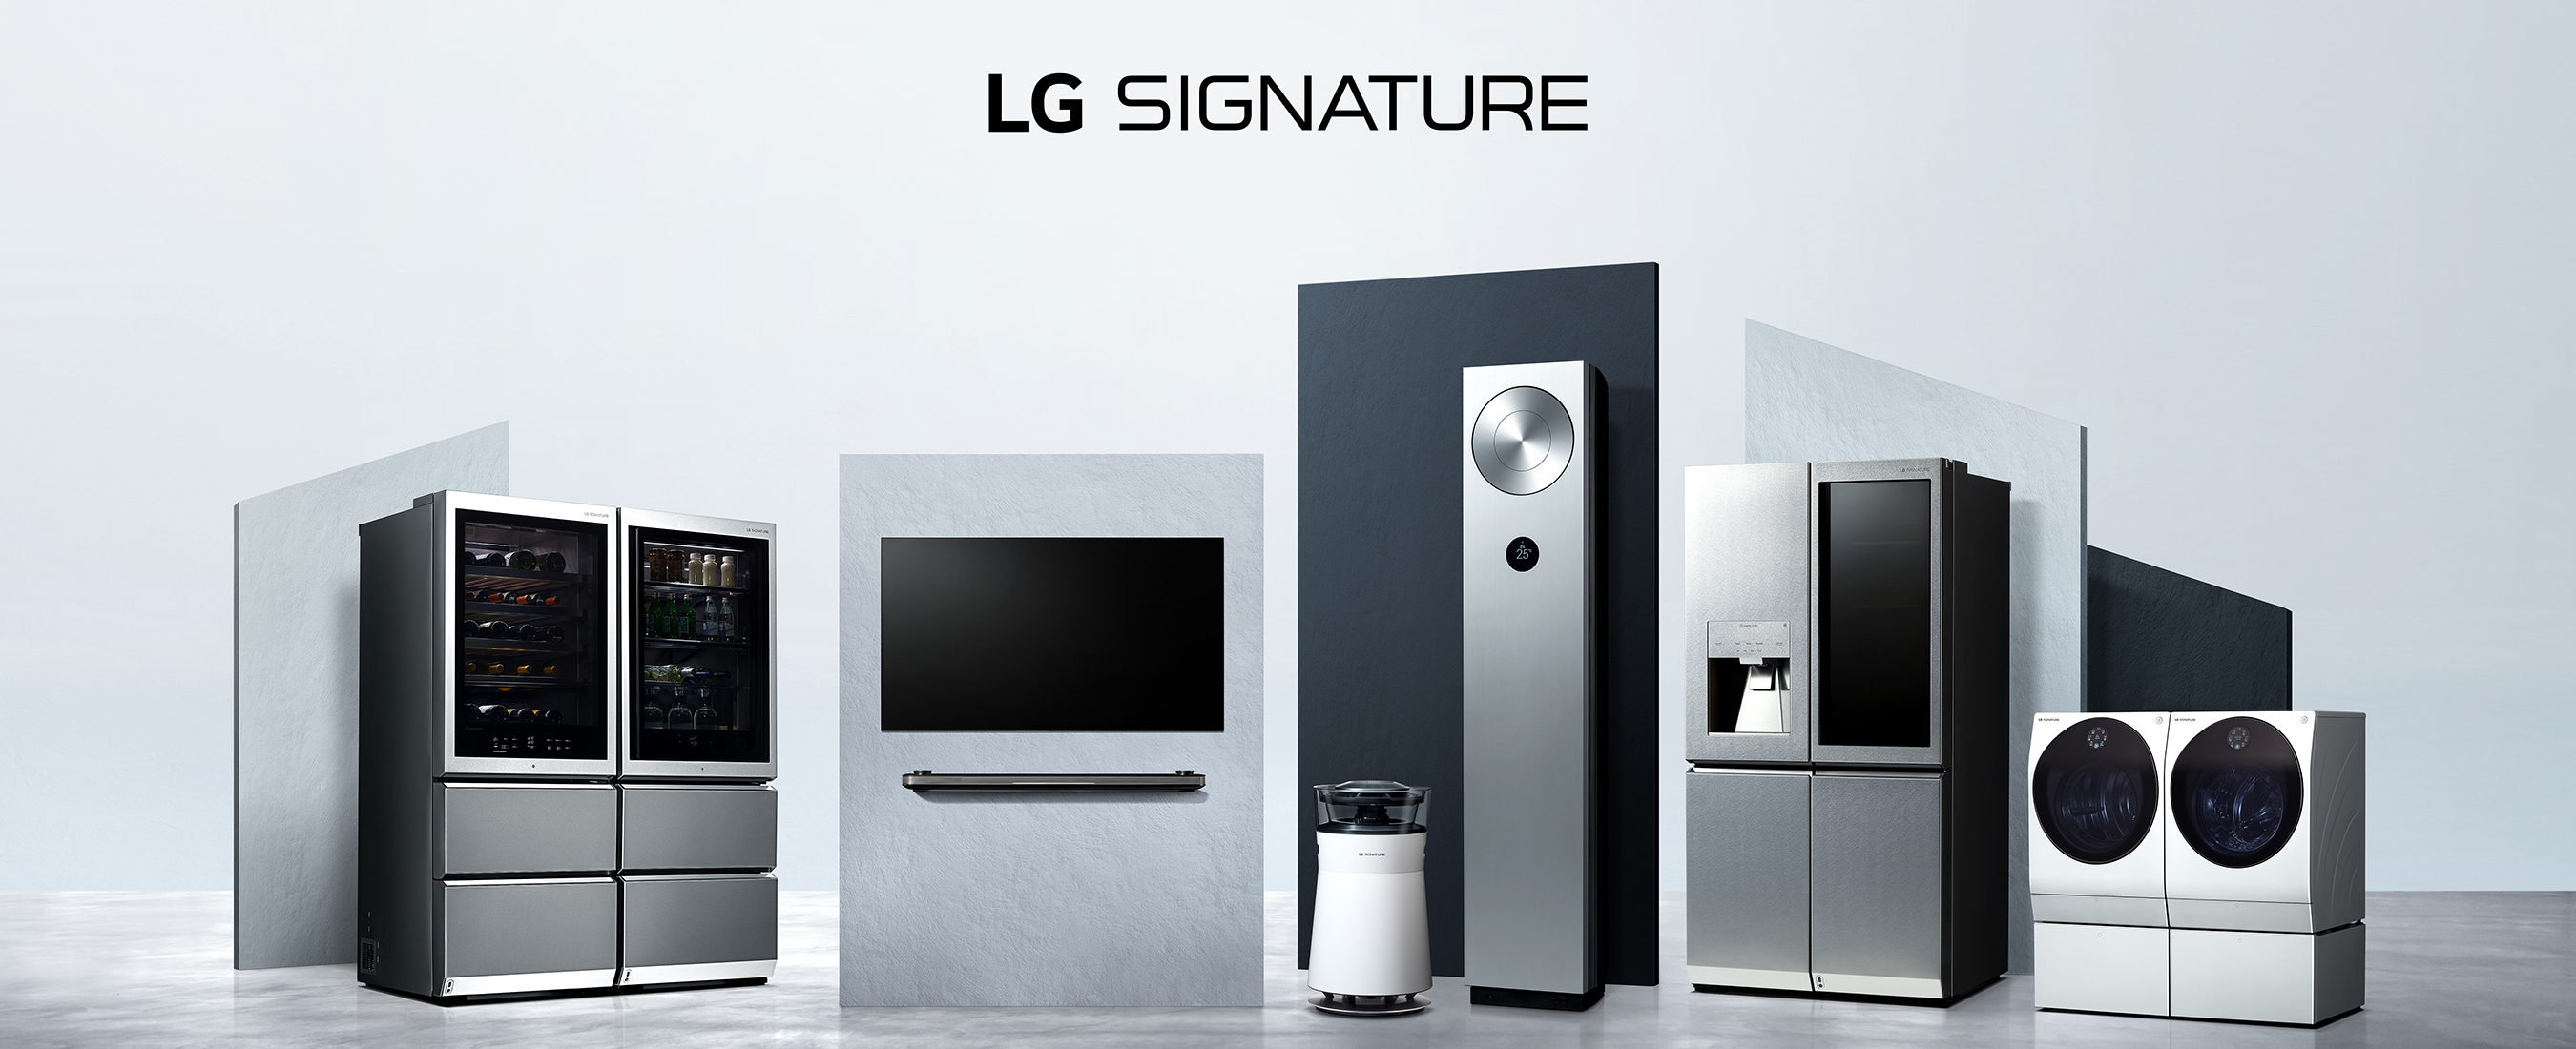 Perfection Realized Lg Signature Ultra Premium Home Appliances